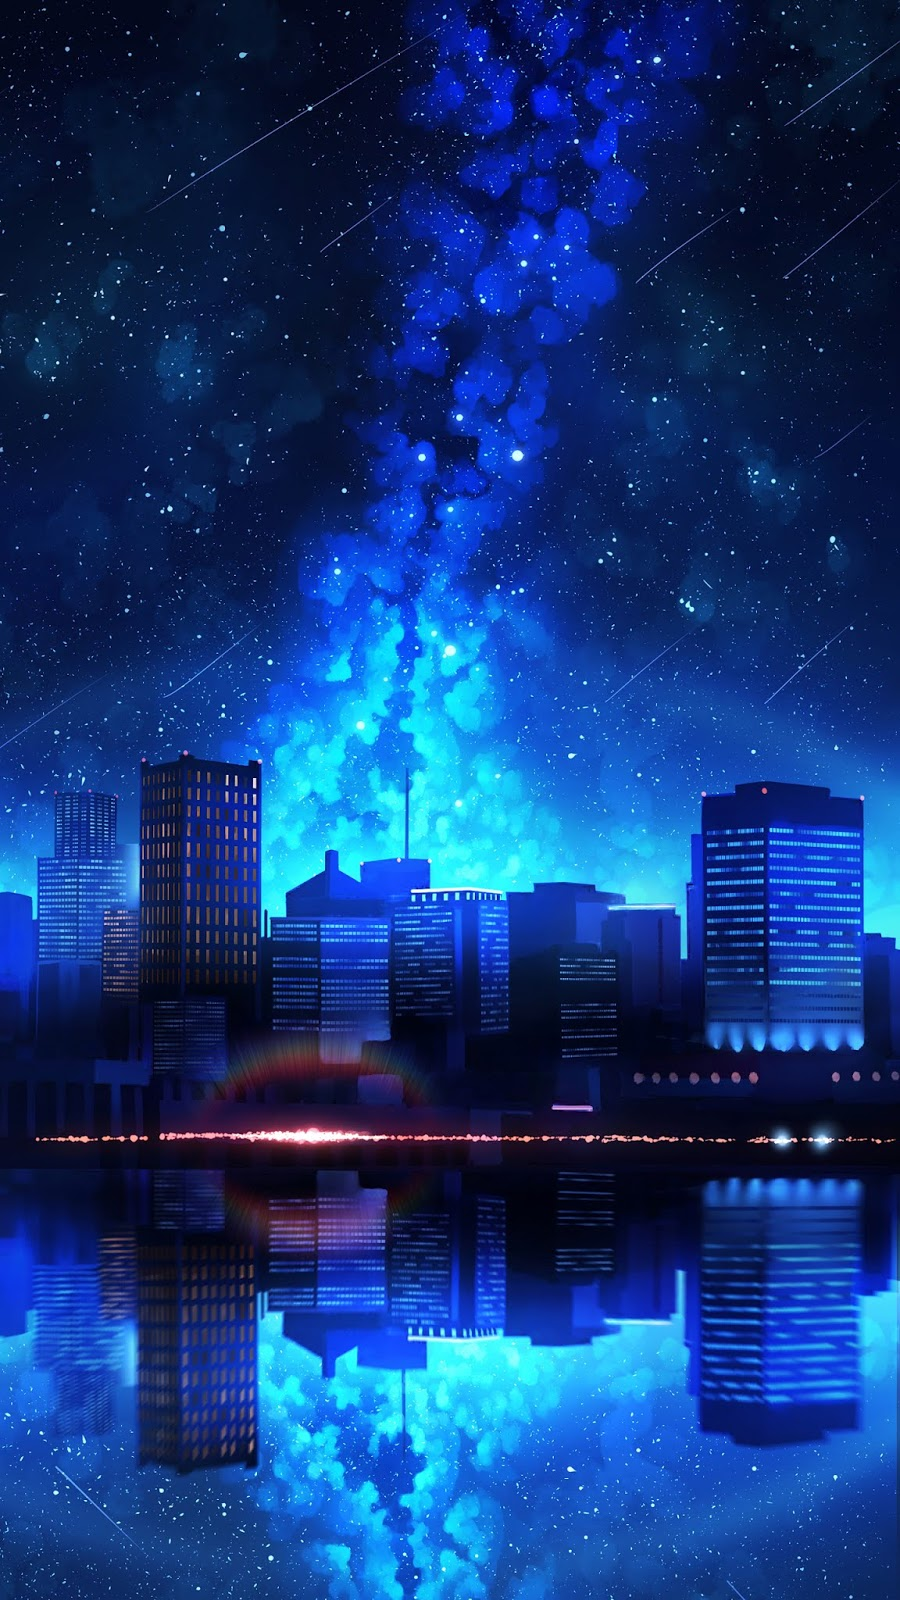 City in the starry night